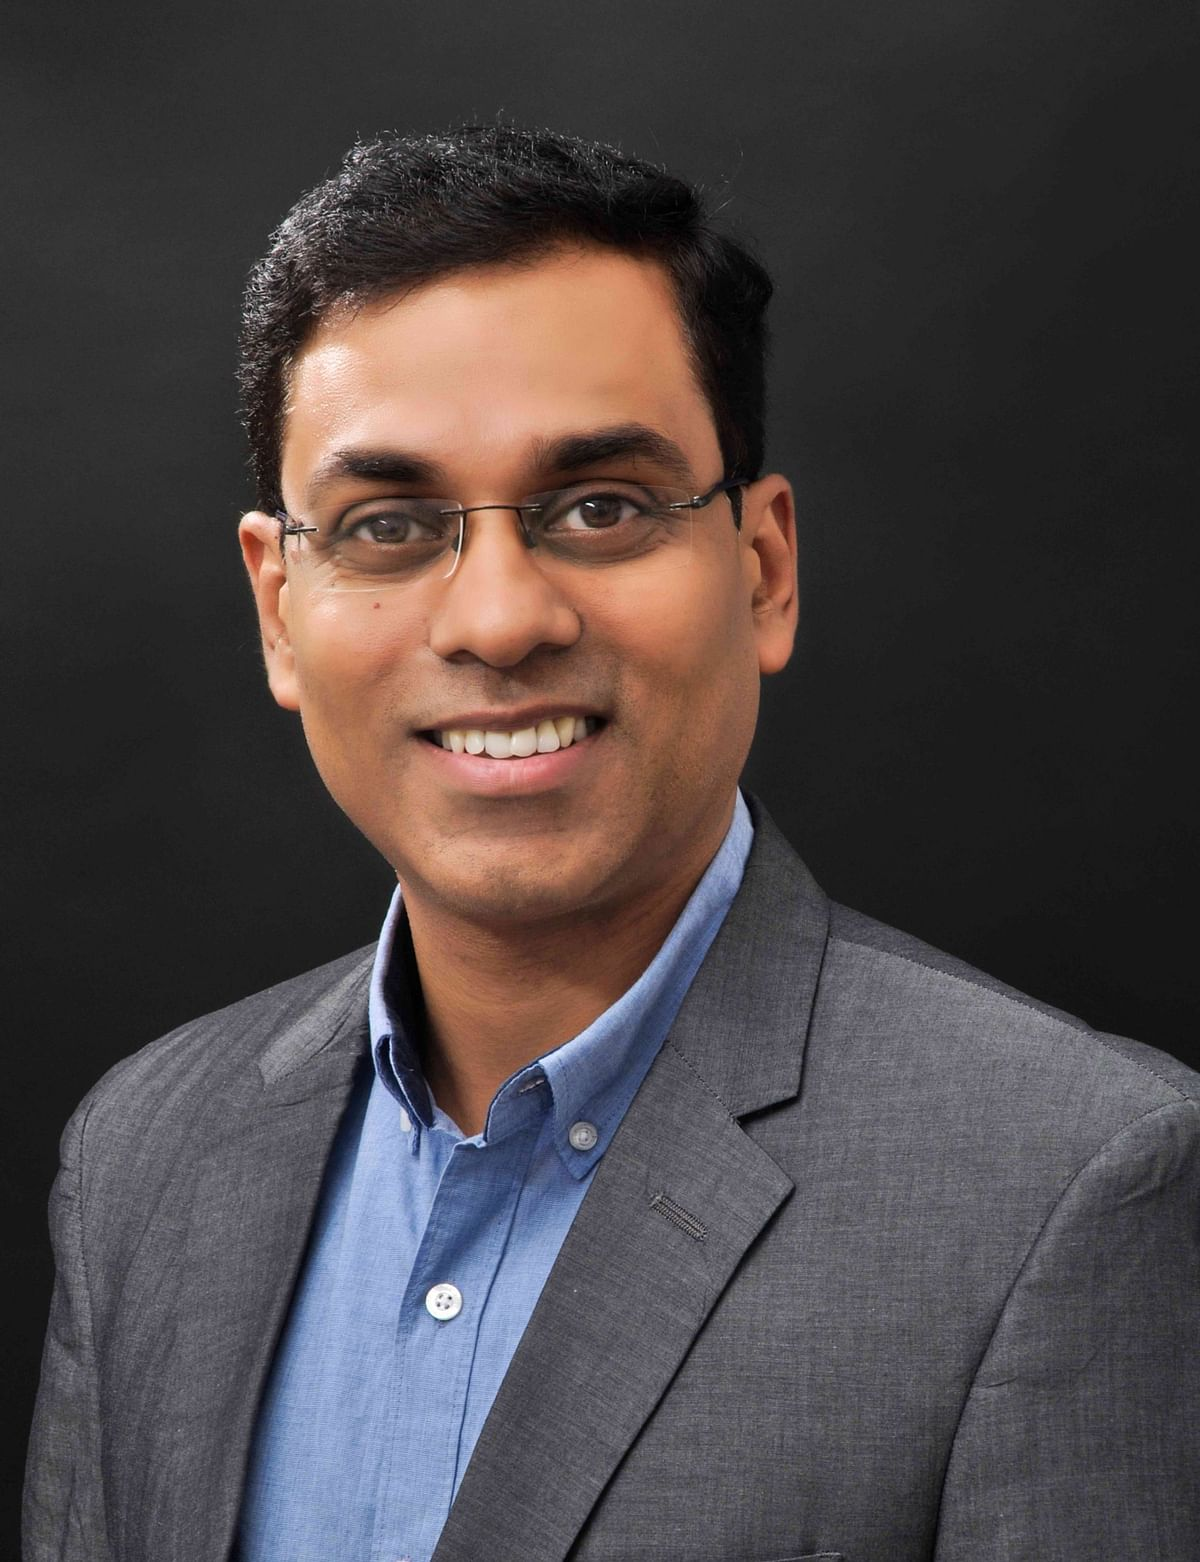 Aswani Chaitanya, chief executive officer and co-founder, Timios